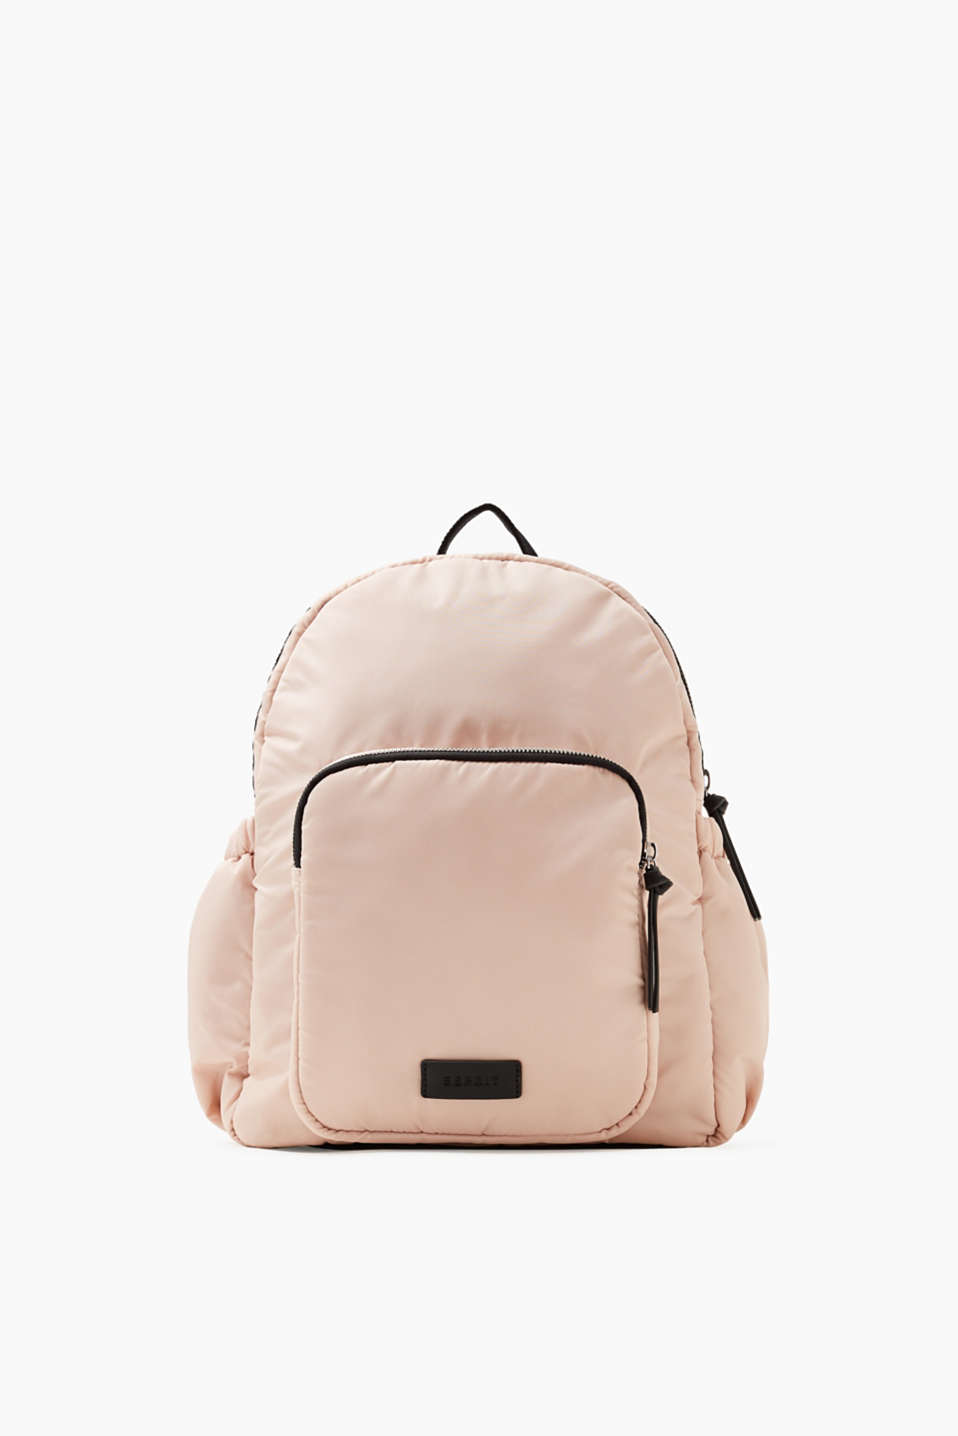 The exciting colour contrast between pink and black makes this little nylon rucksack really eye-catching.